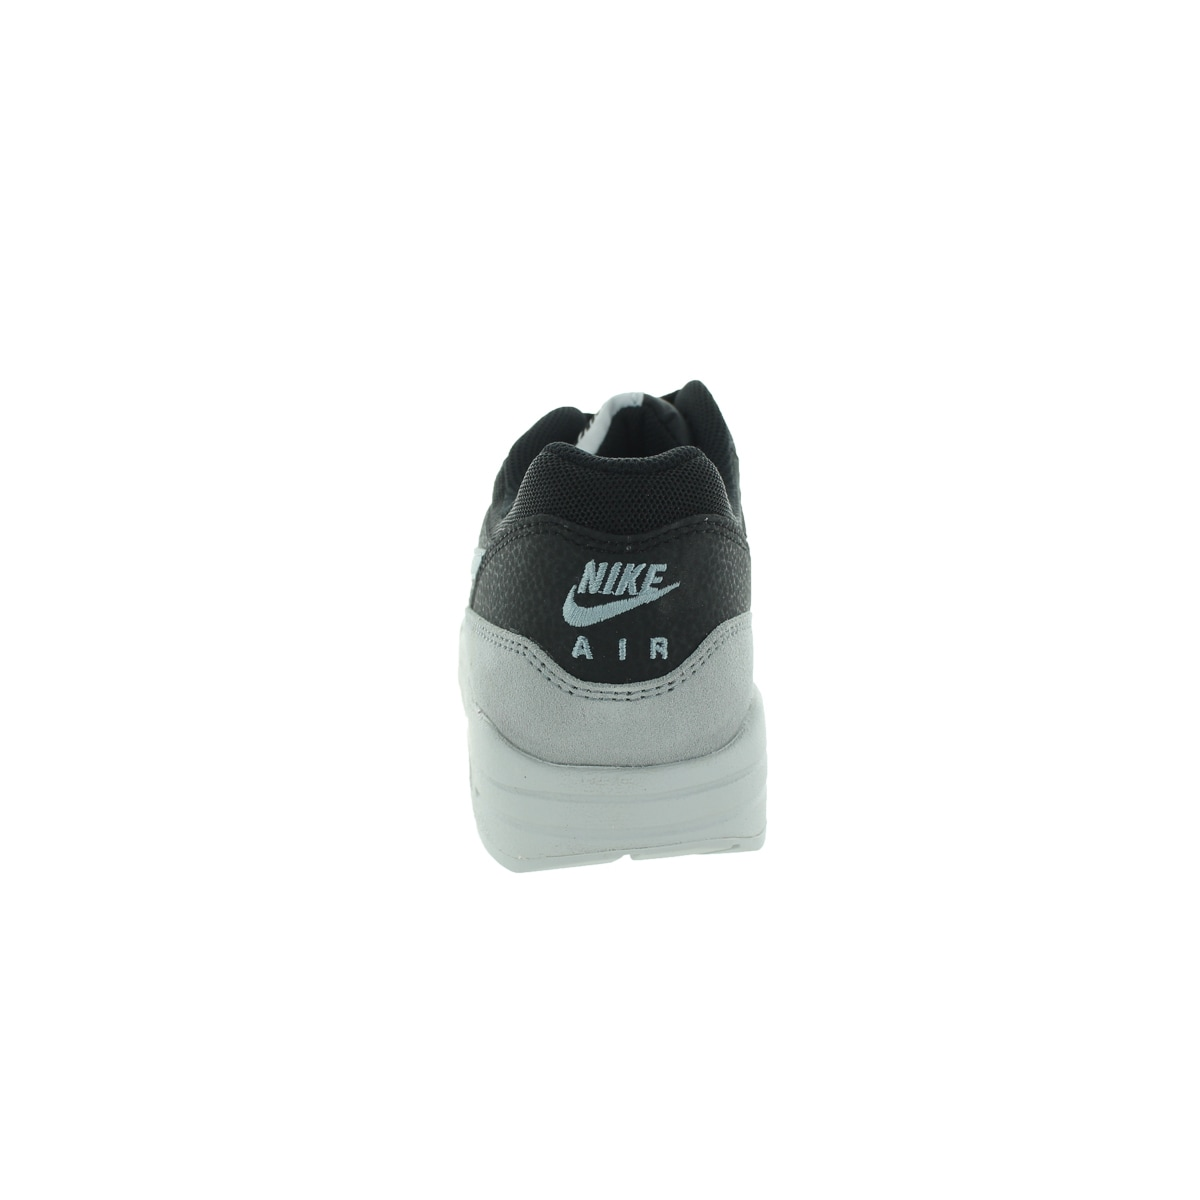 quality design 3494c 4e4a0 Shop Nike Women s Air Max 1 Essential Black Dove Grey Pure Platinum Running  Shoe - Free Shipping Today - Overstock - 12322548